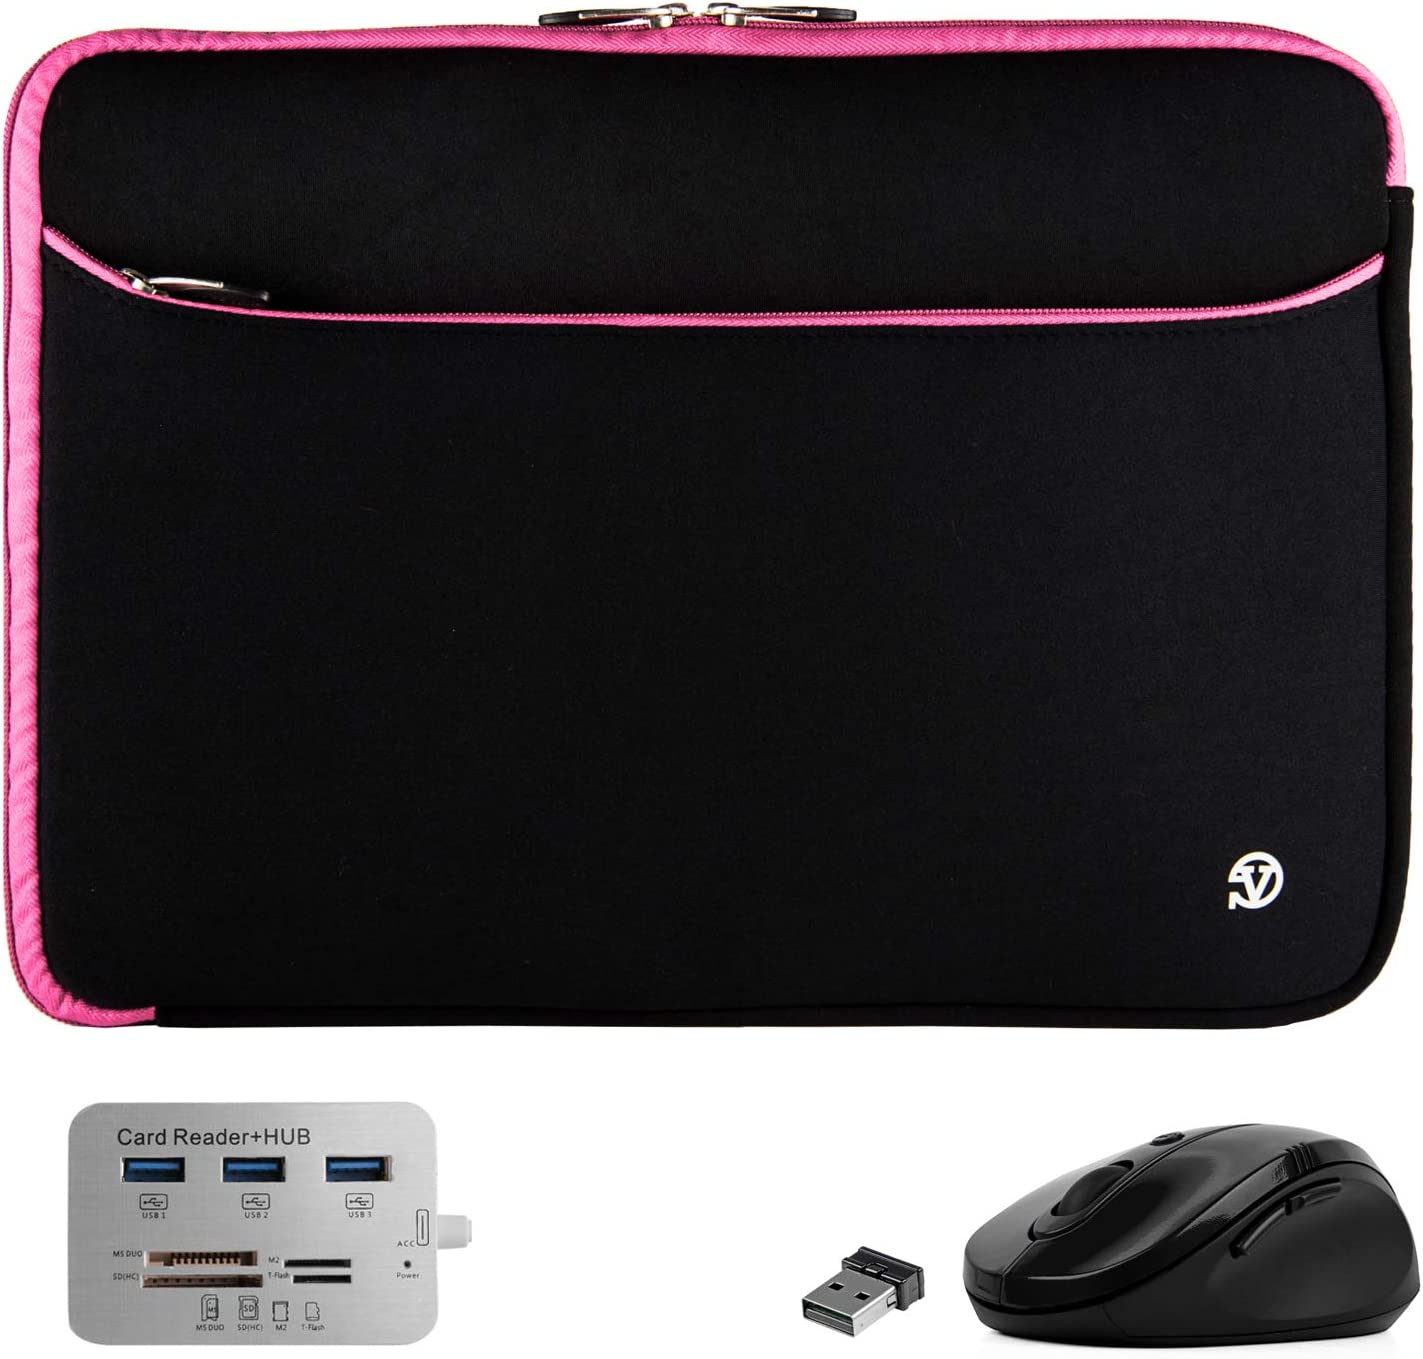 Protective Padded Black Pink 14-inch Laptop Sleeve with USB Hub and Mouse for Asus ZenBook, VivoBook, ExpertBook, Chromebook 14-inch